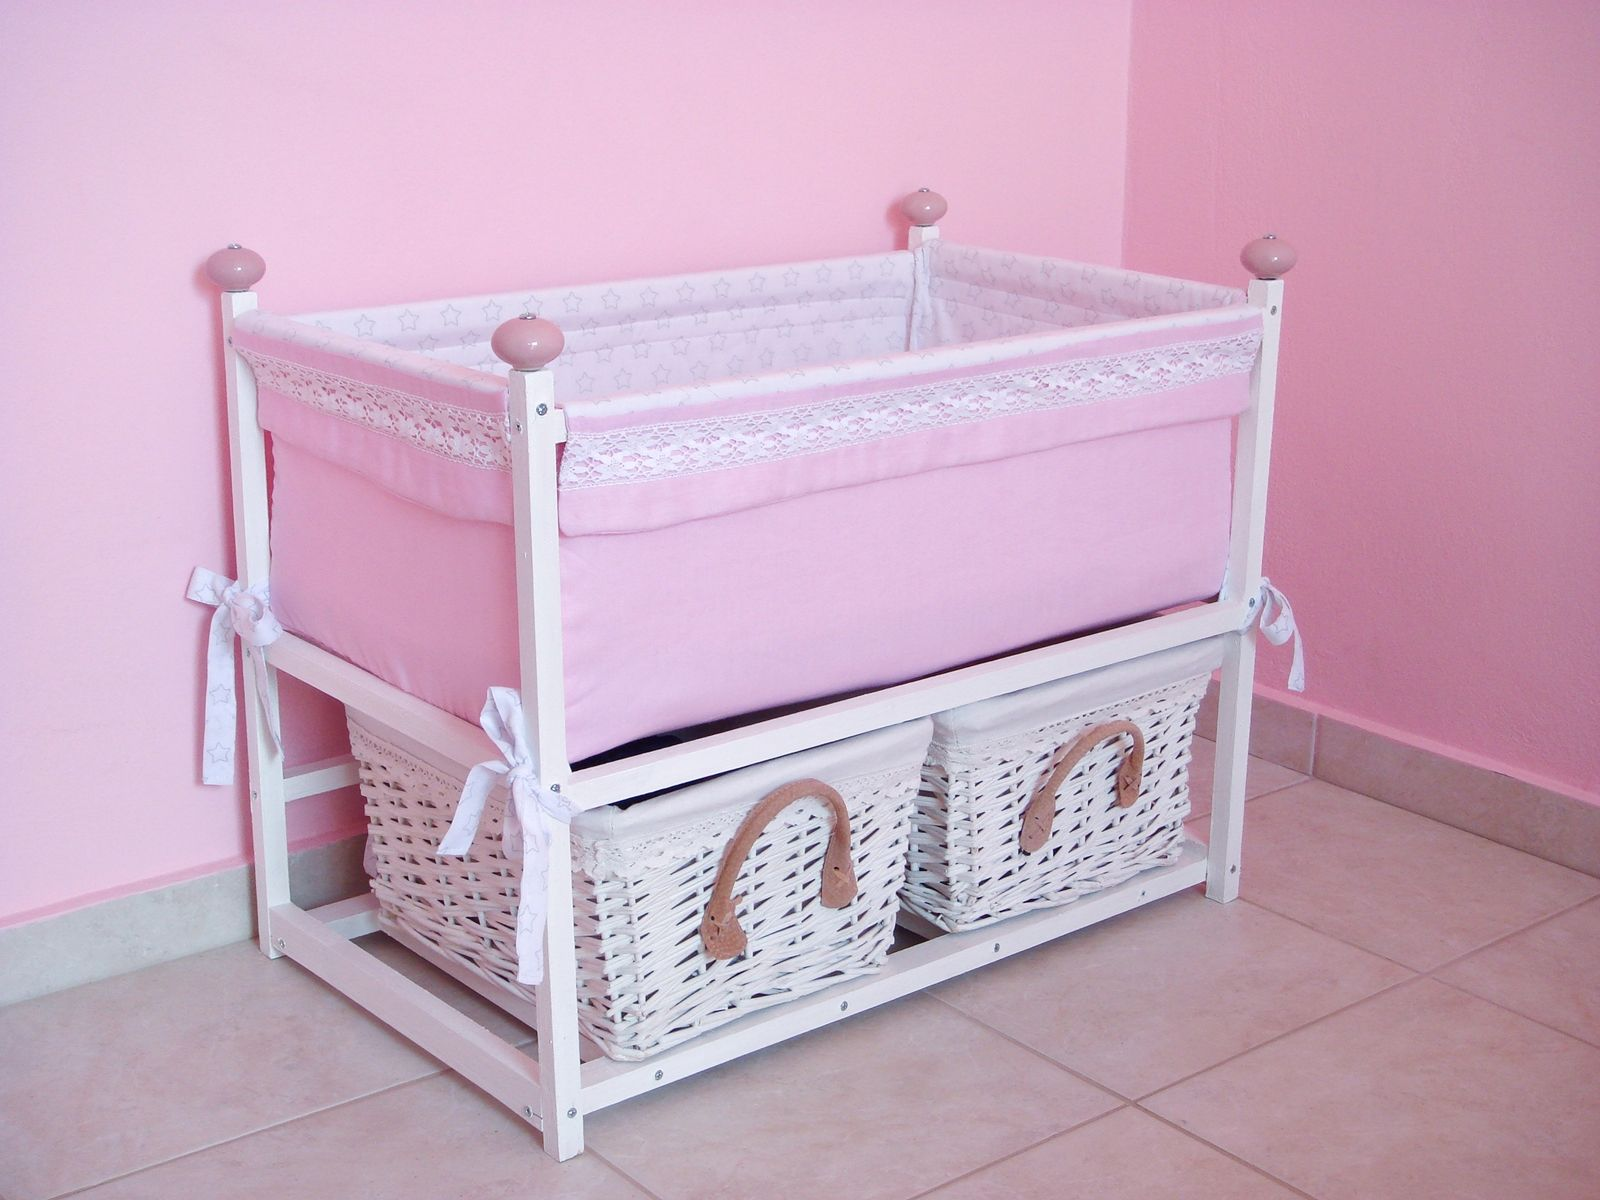 DIY doll size of the bed 60 cm (L